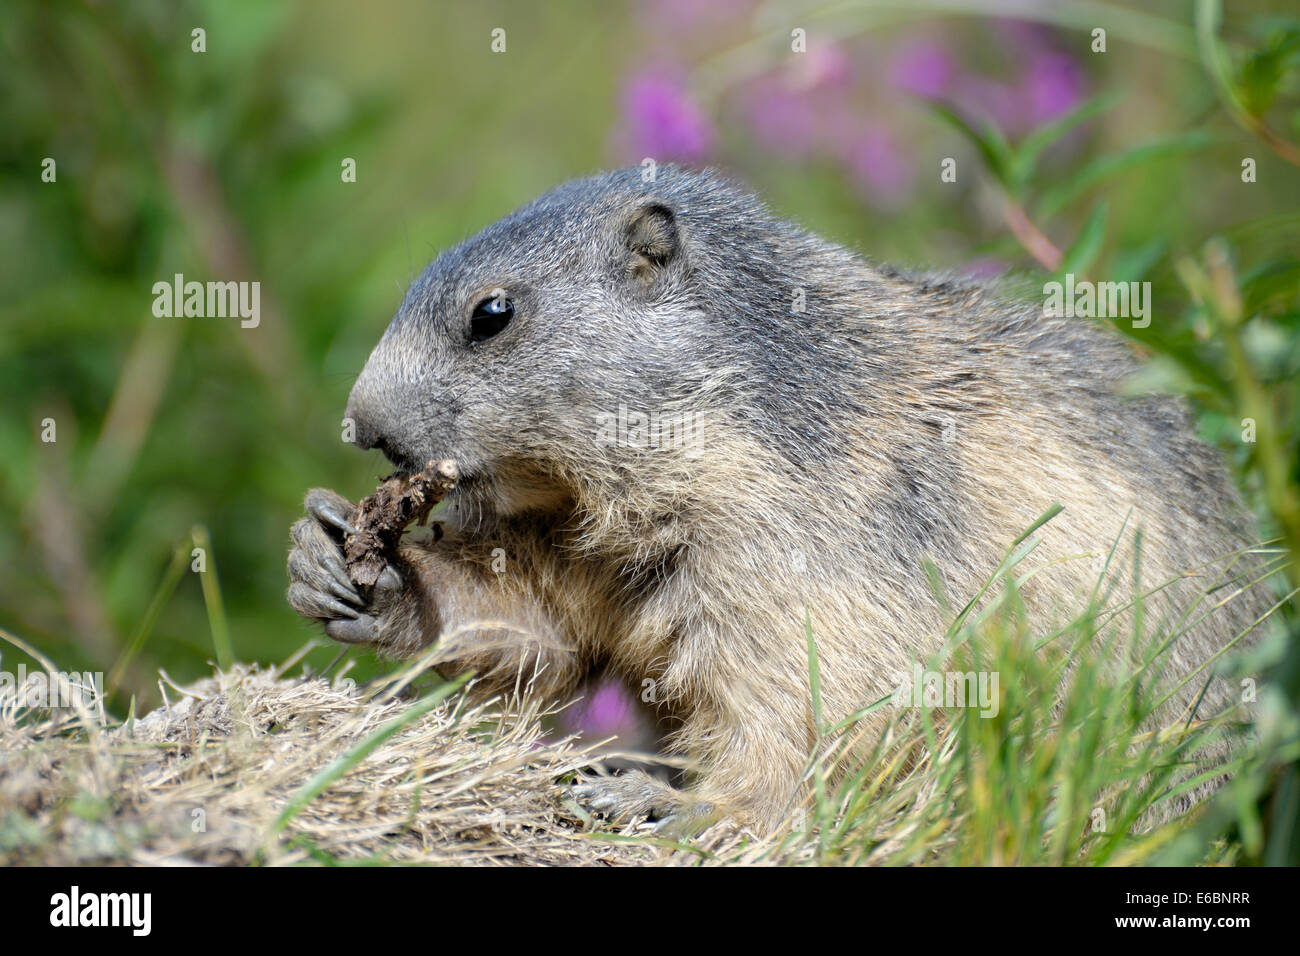 Marmot chewing the root of a plant in the Swiss Alps near the village of Saas-Fee Stock Photo